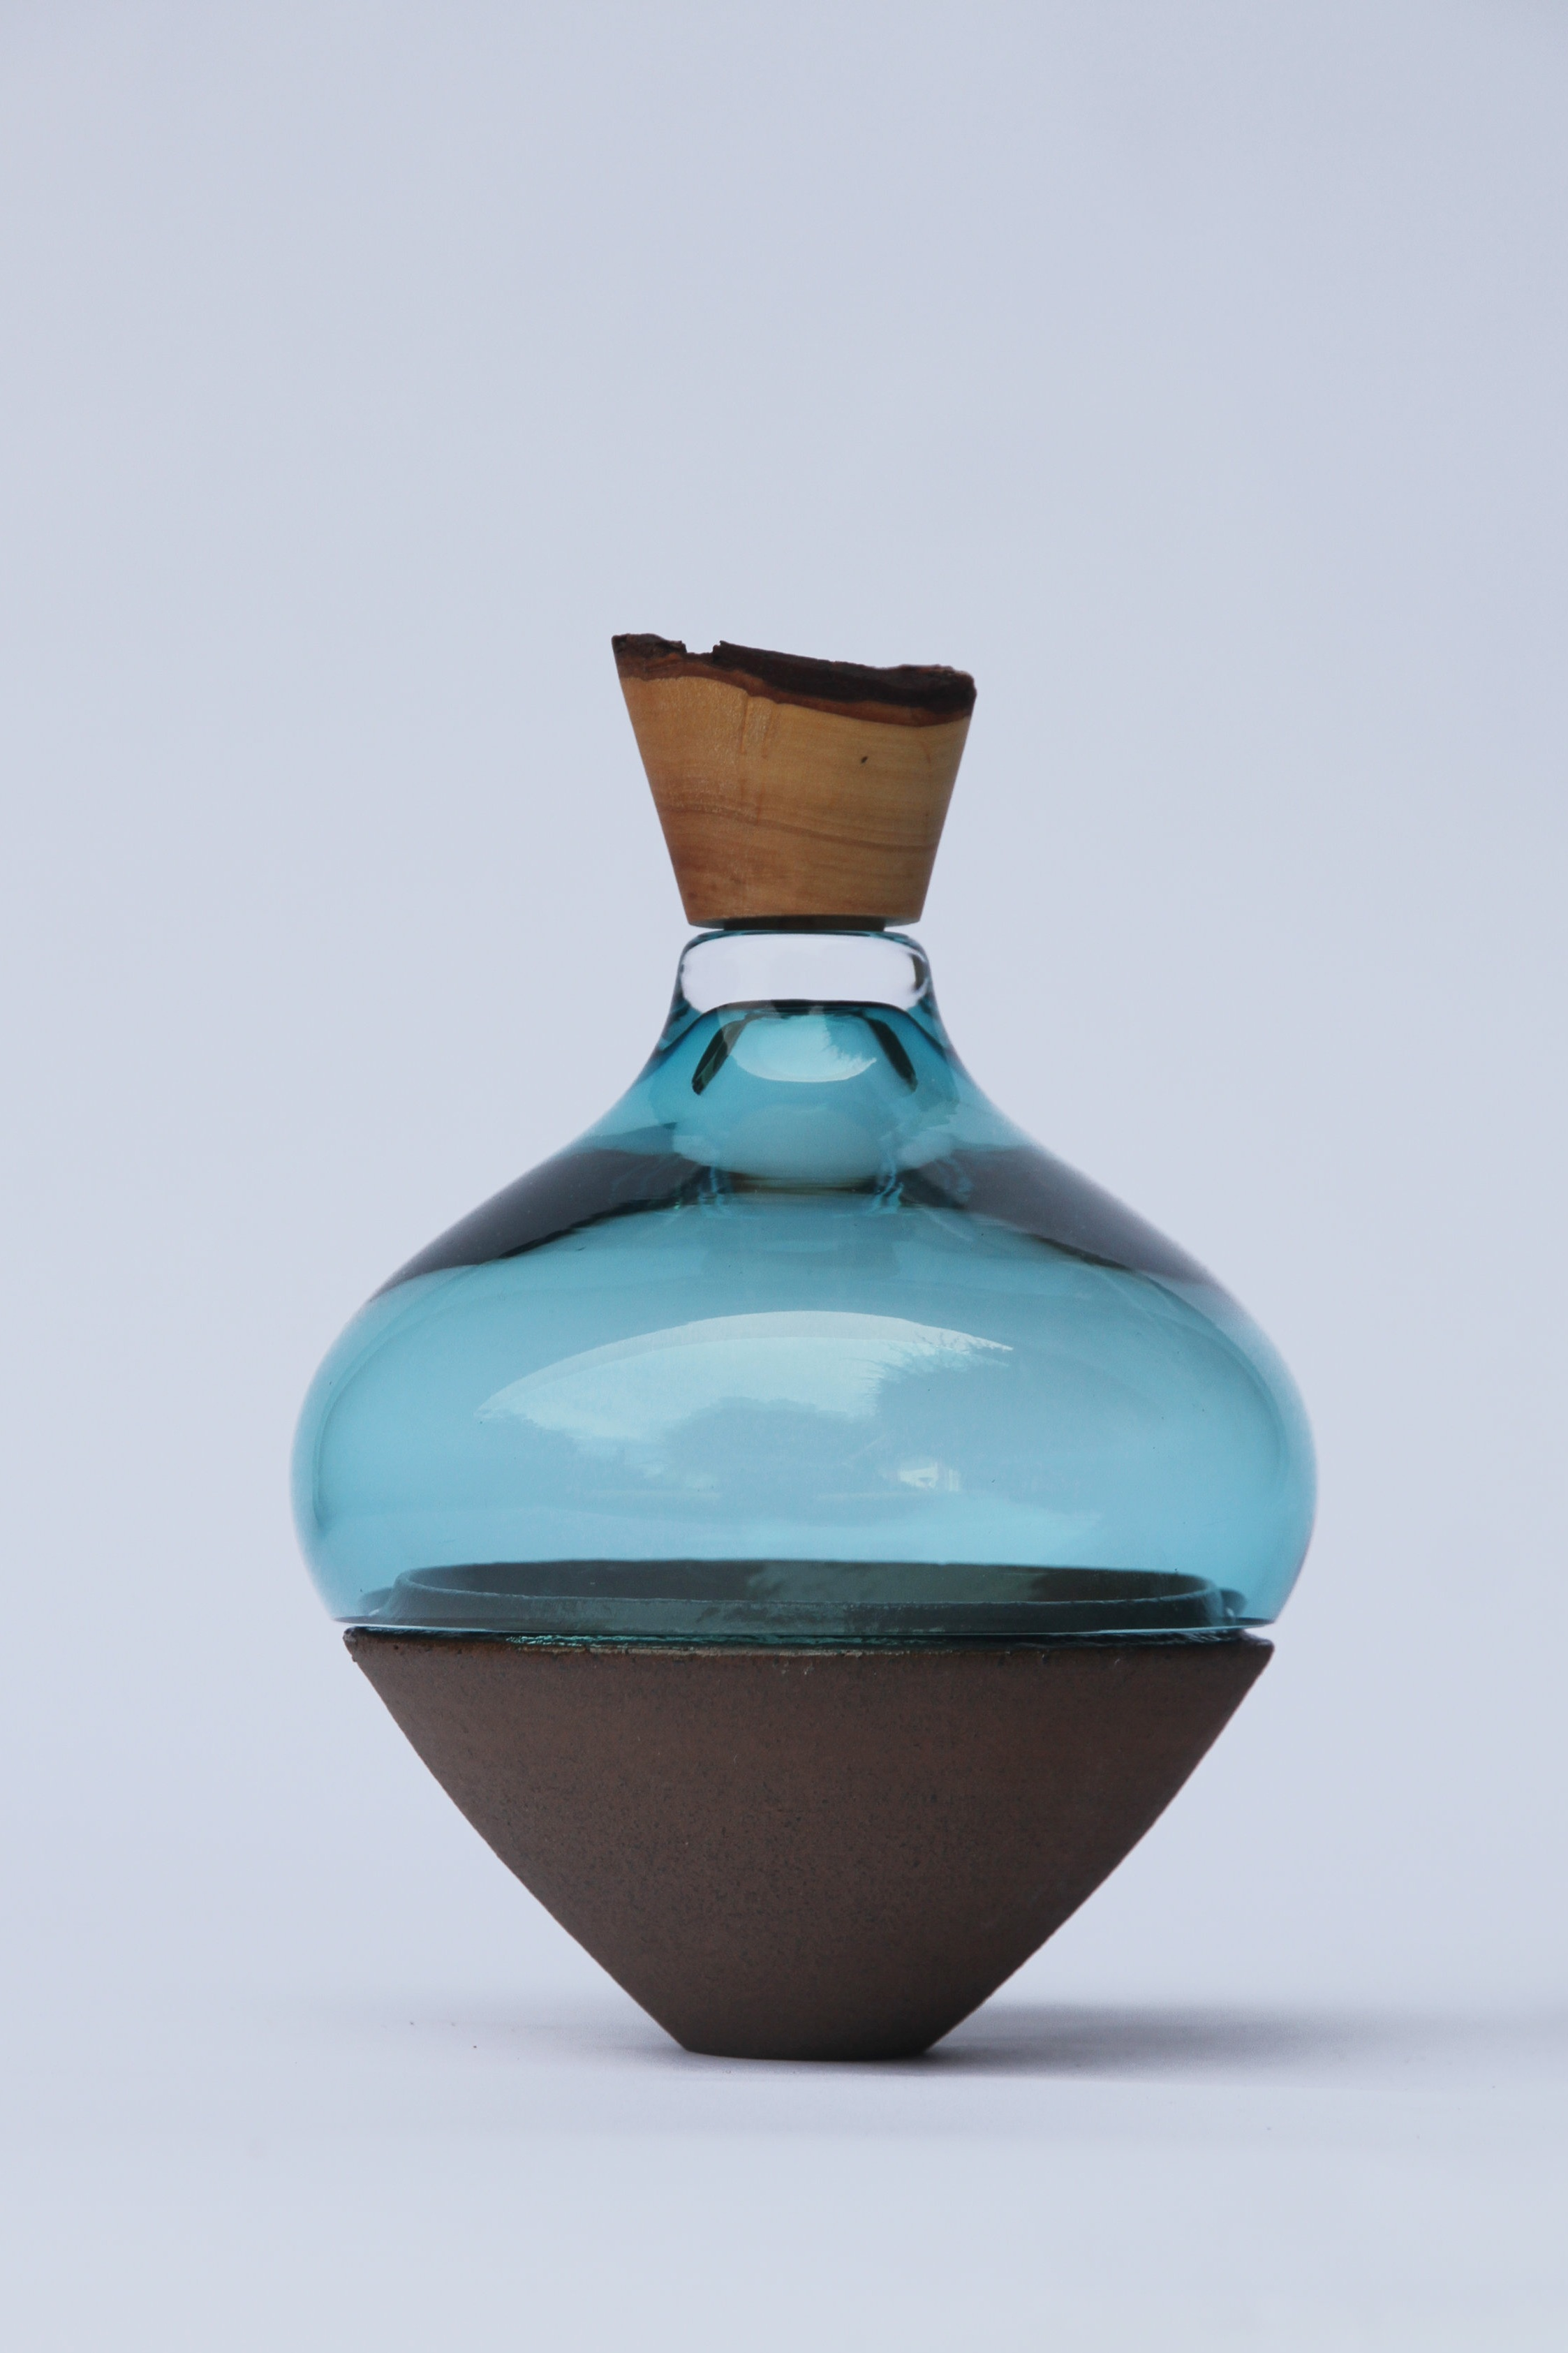 Terra+S+Turquoise+and+Brown+Ceramic.jpg